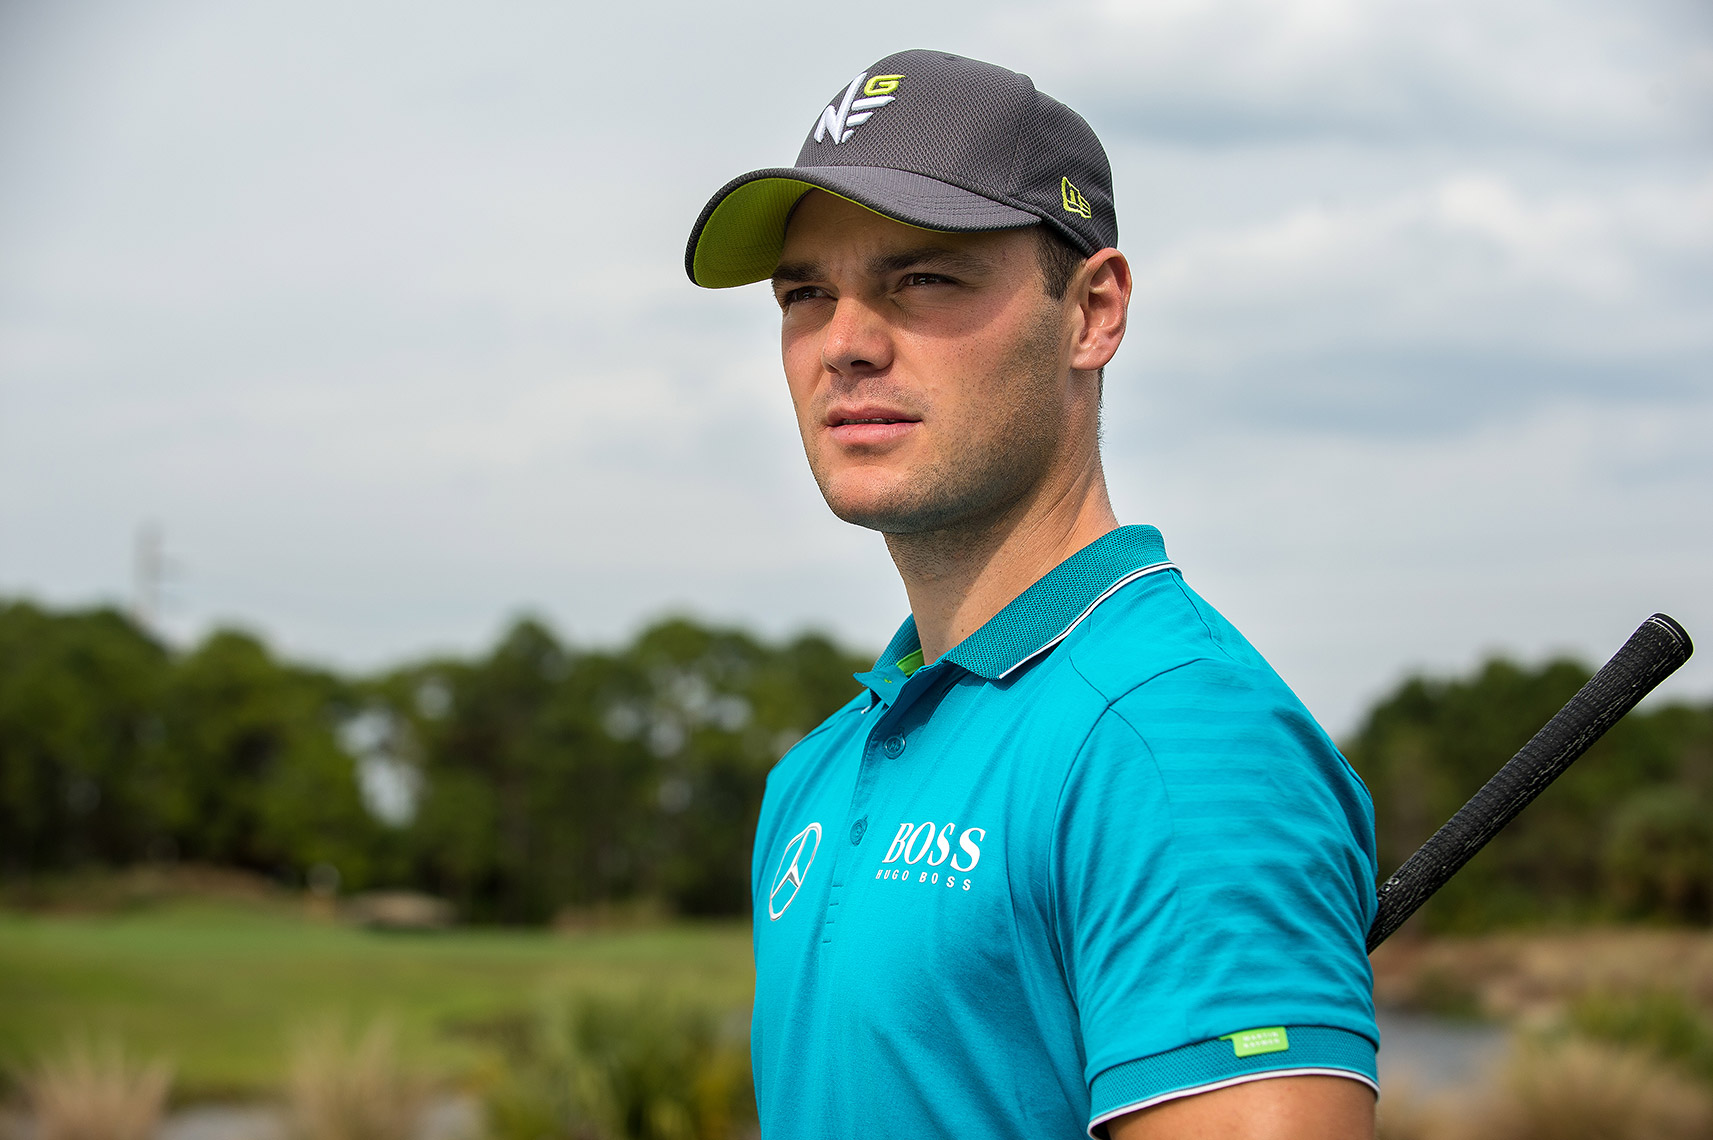 new-era-caps-john-schnack-photography-commercial-sports-photographer-san-diego-los-angeles-martin-kaymer-palm-beach-golf-photo-shoot-15